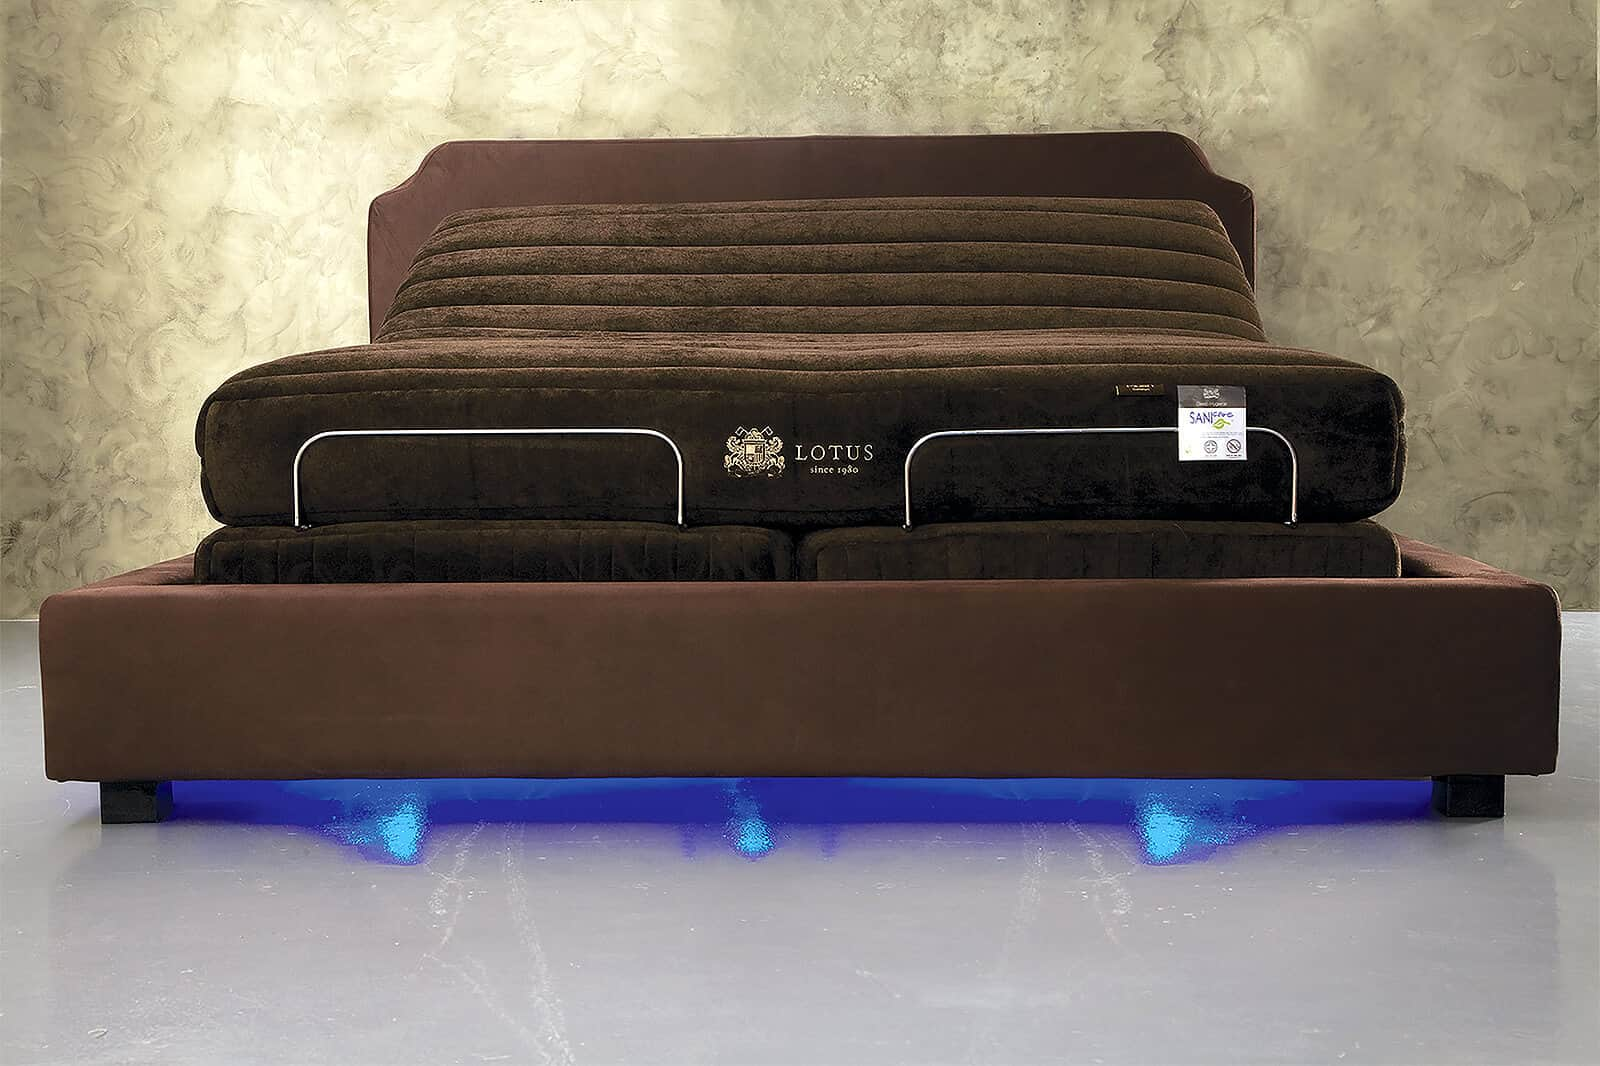 Lotus Bed frame : Adjustable Bed - Lotus Slimflex II 9